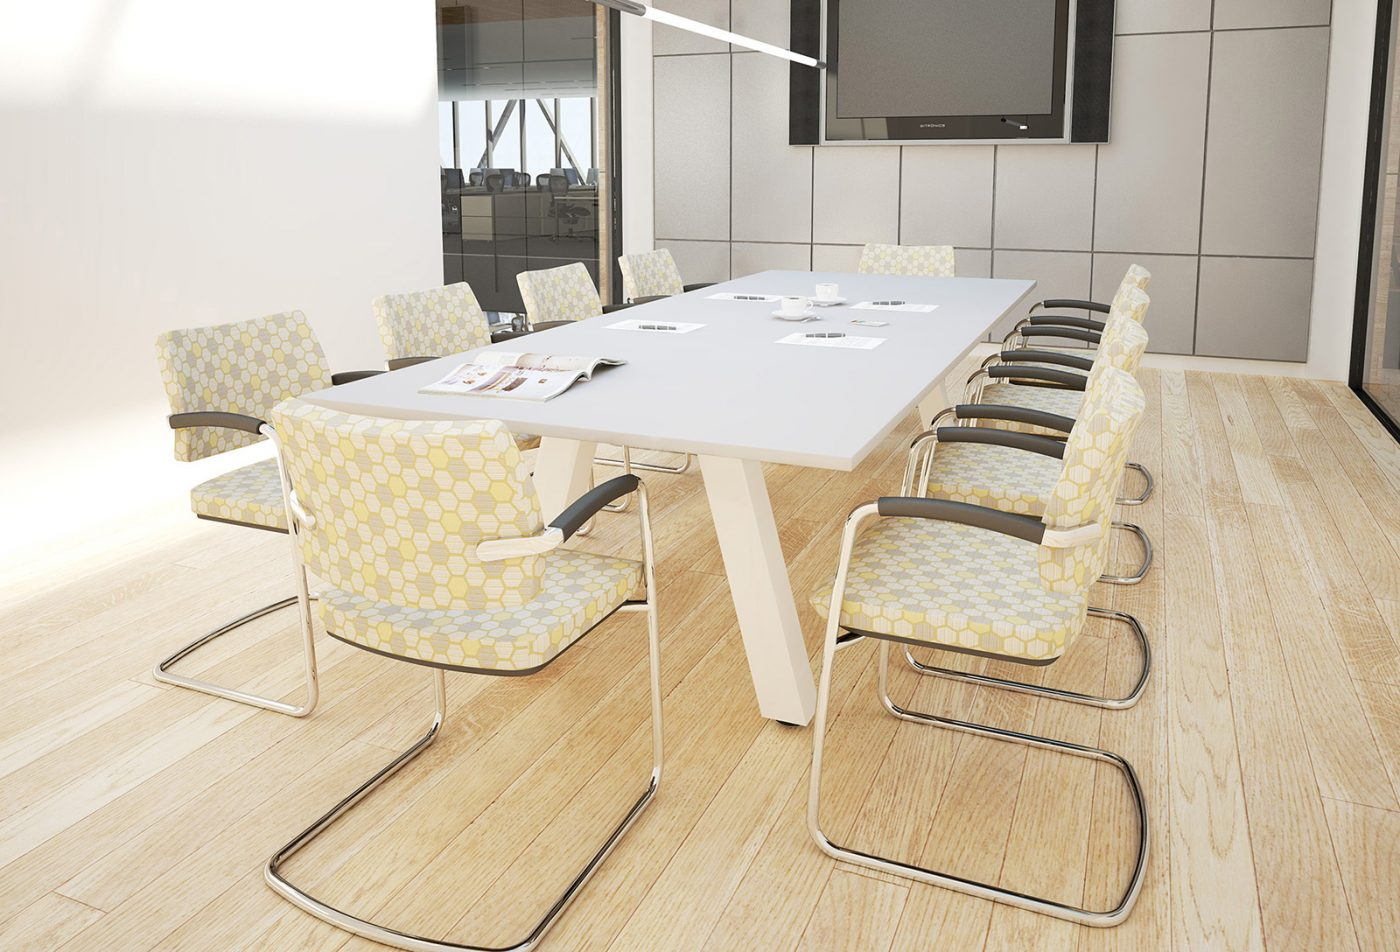 force, boardroom table, meeting table, rectangular table, office furniture, MFC furniture